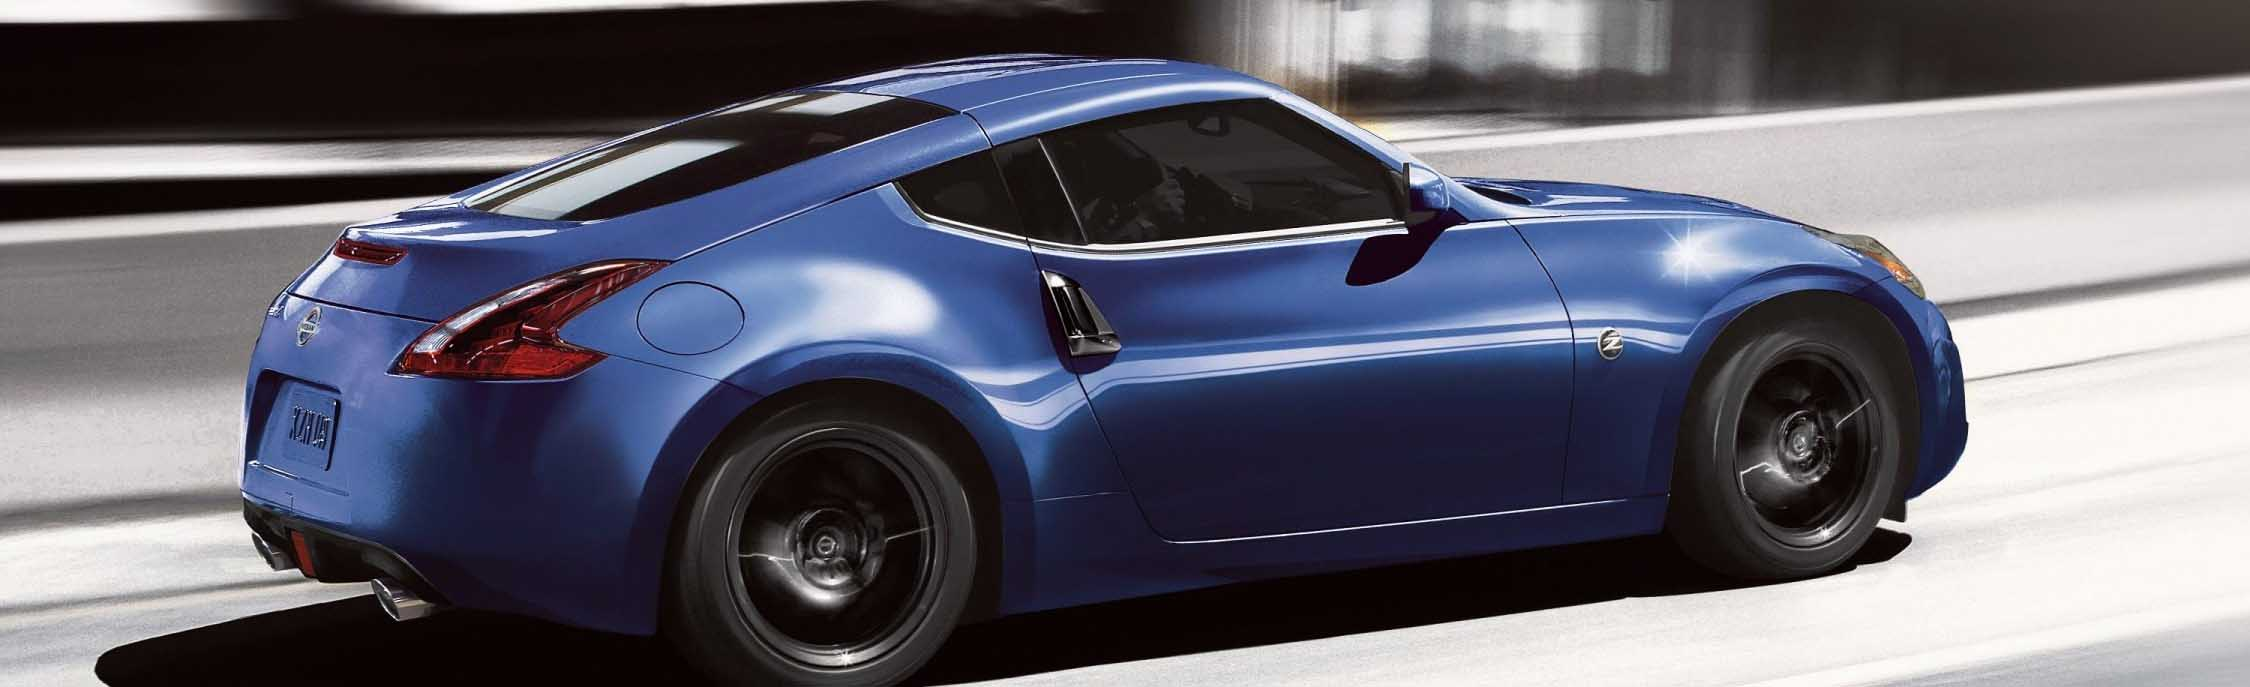 Meet The 2020 Nissan 370Z Sports Car In Tomball, TX, Near Aldine